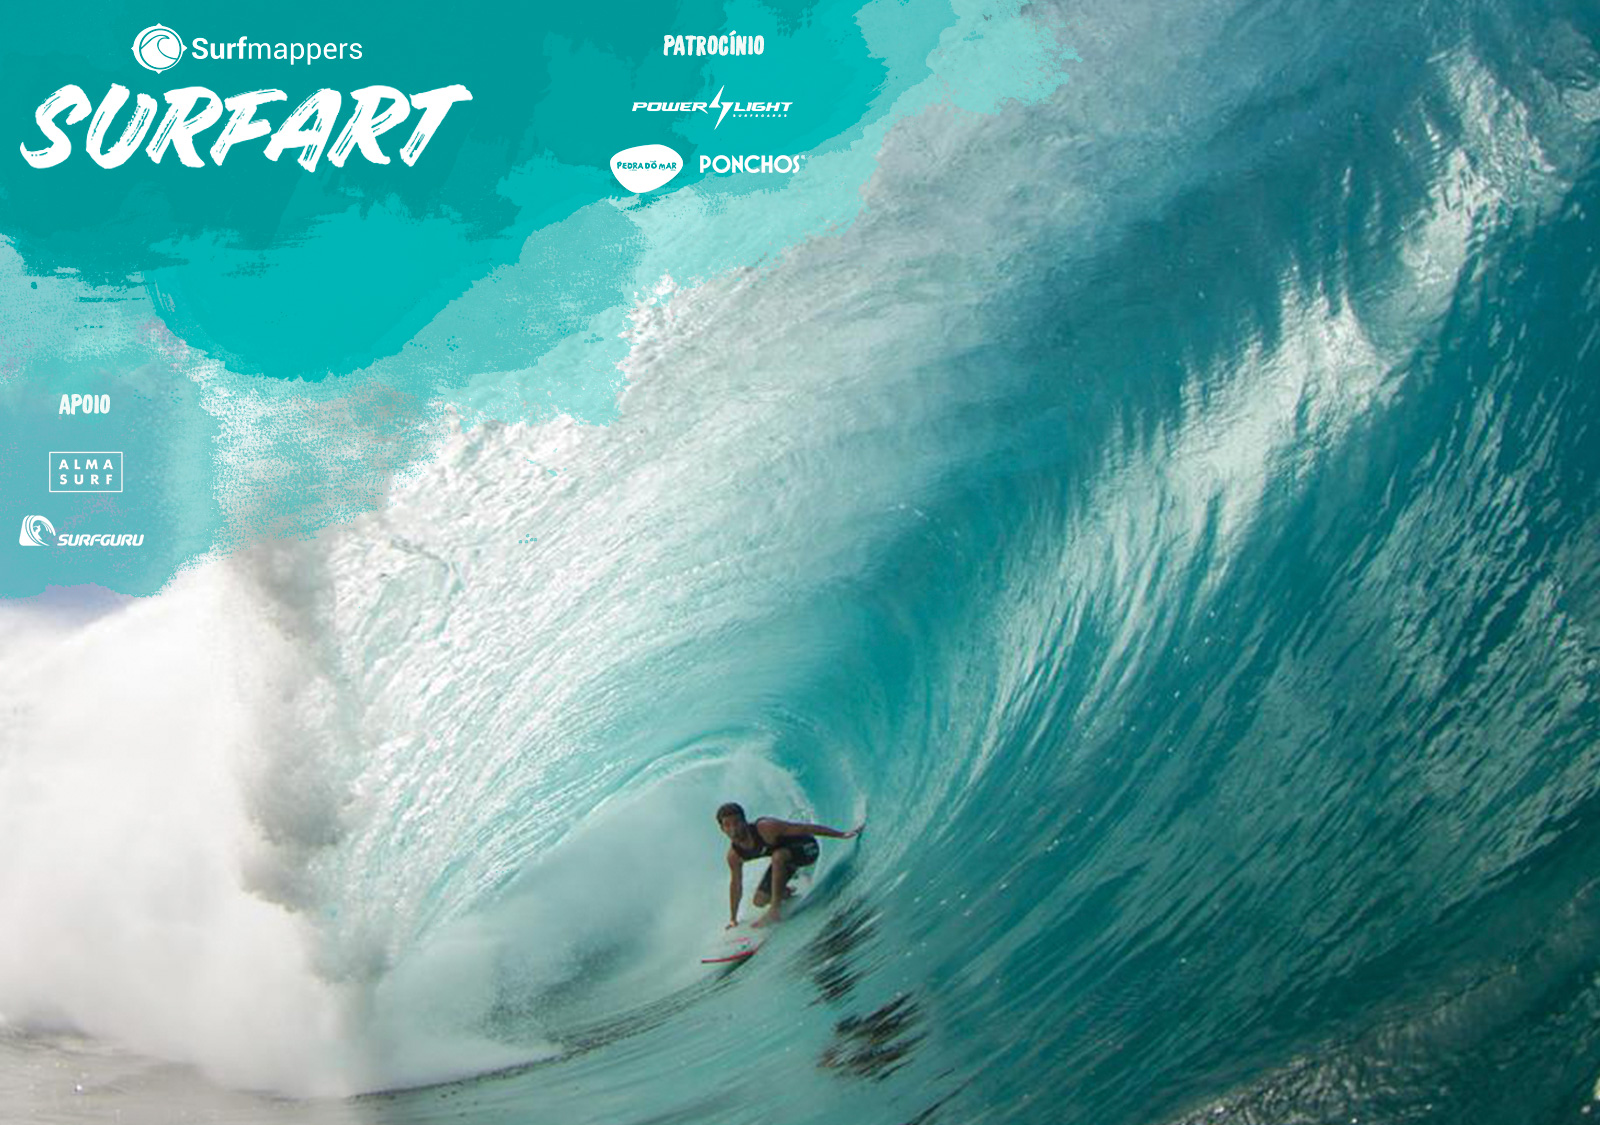 concurso de foto surfmappers surfart